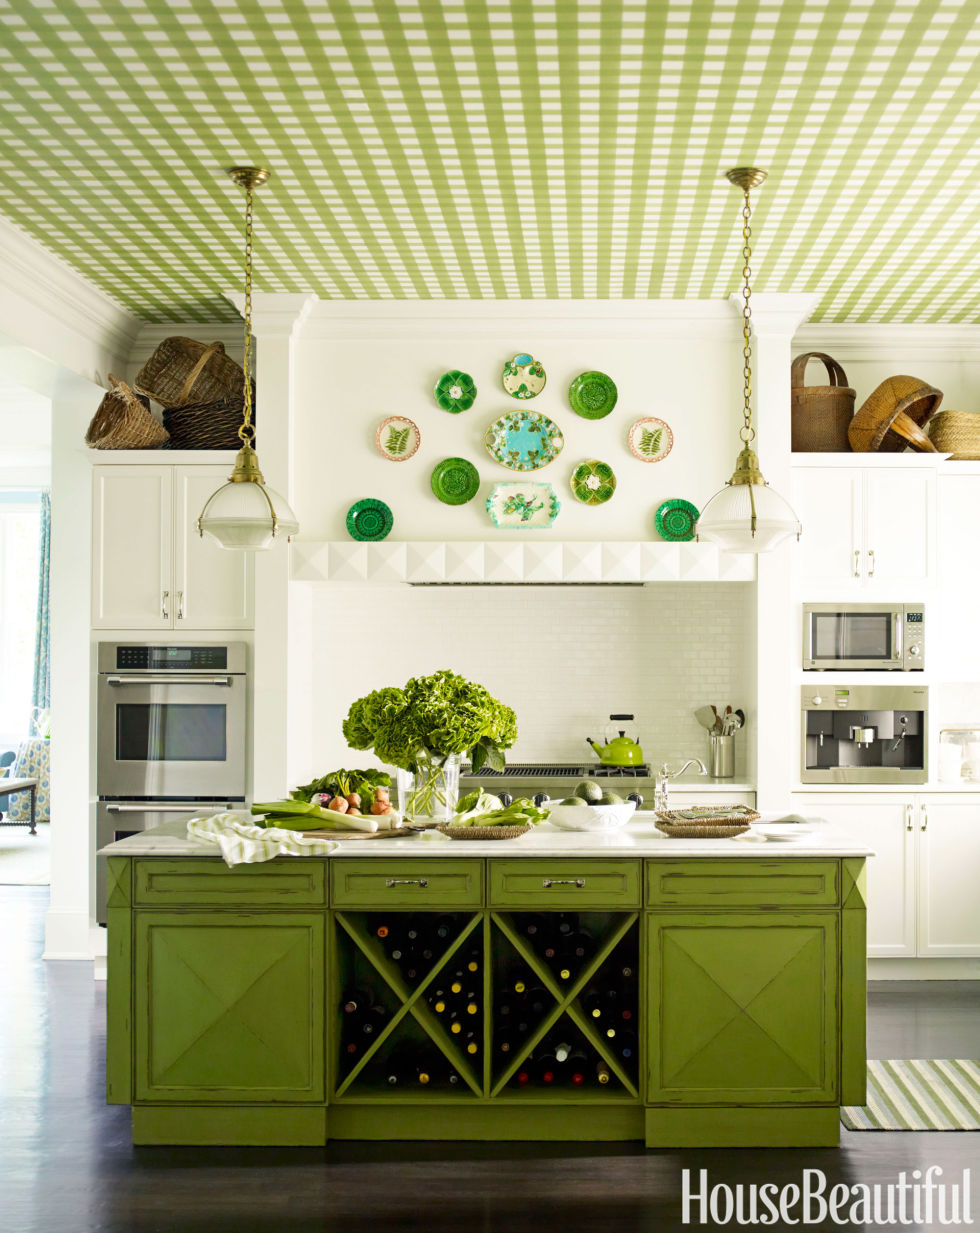 Kitchen Deco 15 Kitchen Decorating Ideas Pictures Of Kitchen Decor